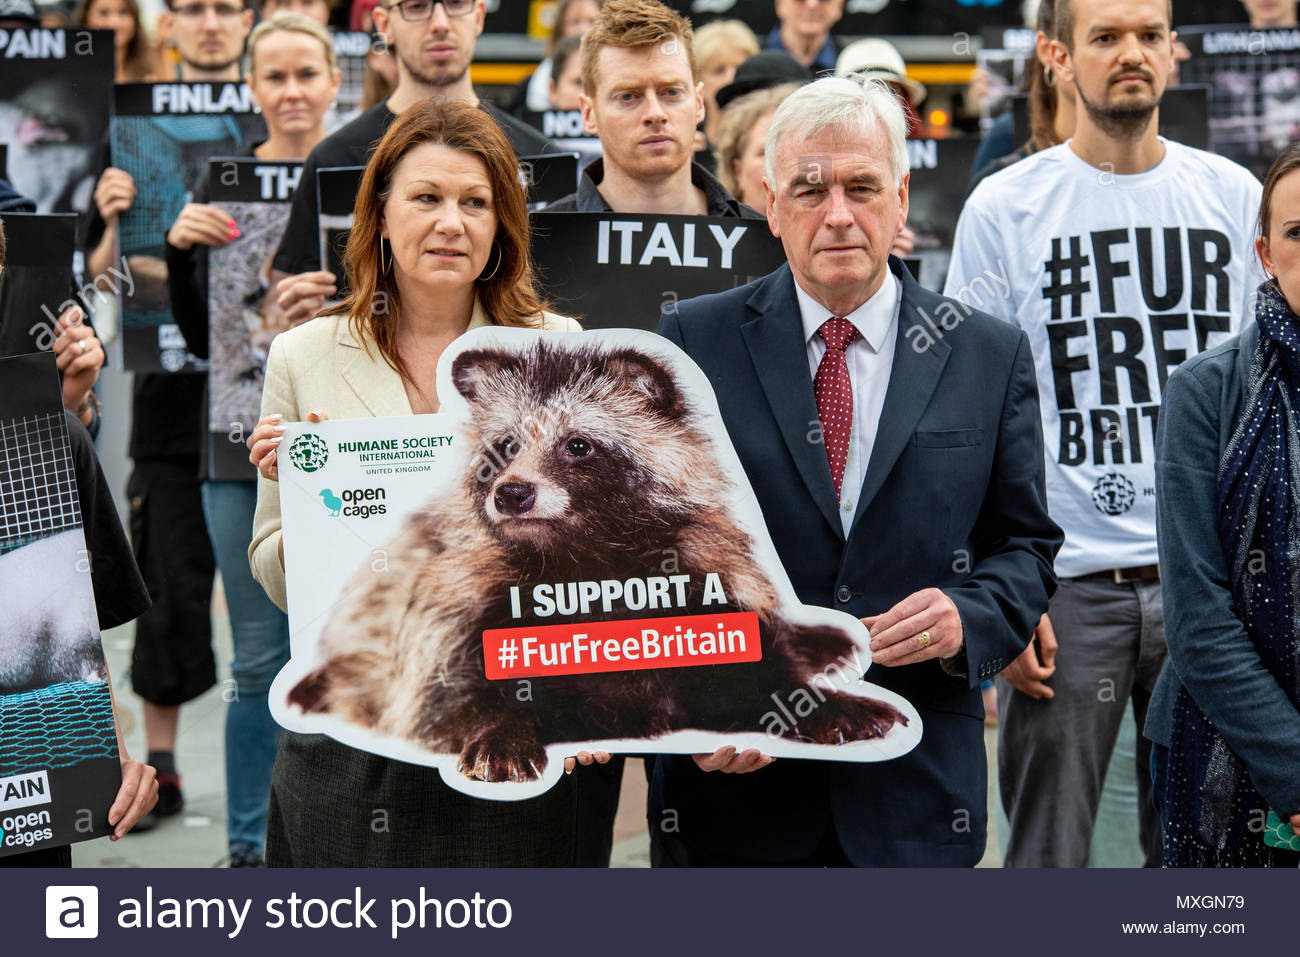 London, Great Britain, 04 Jun 2018 Labour MPs John McDonnell and Sue Hayman join activists from Open Cages and Humane Society calling for the banning of the import of fur ahead of this afternoons debate.  Credit: David Nash/Alamy Live News - Stock Image